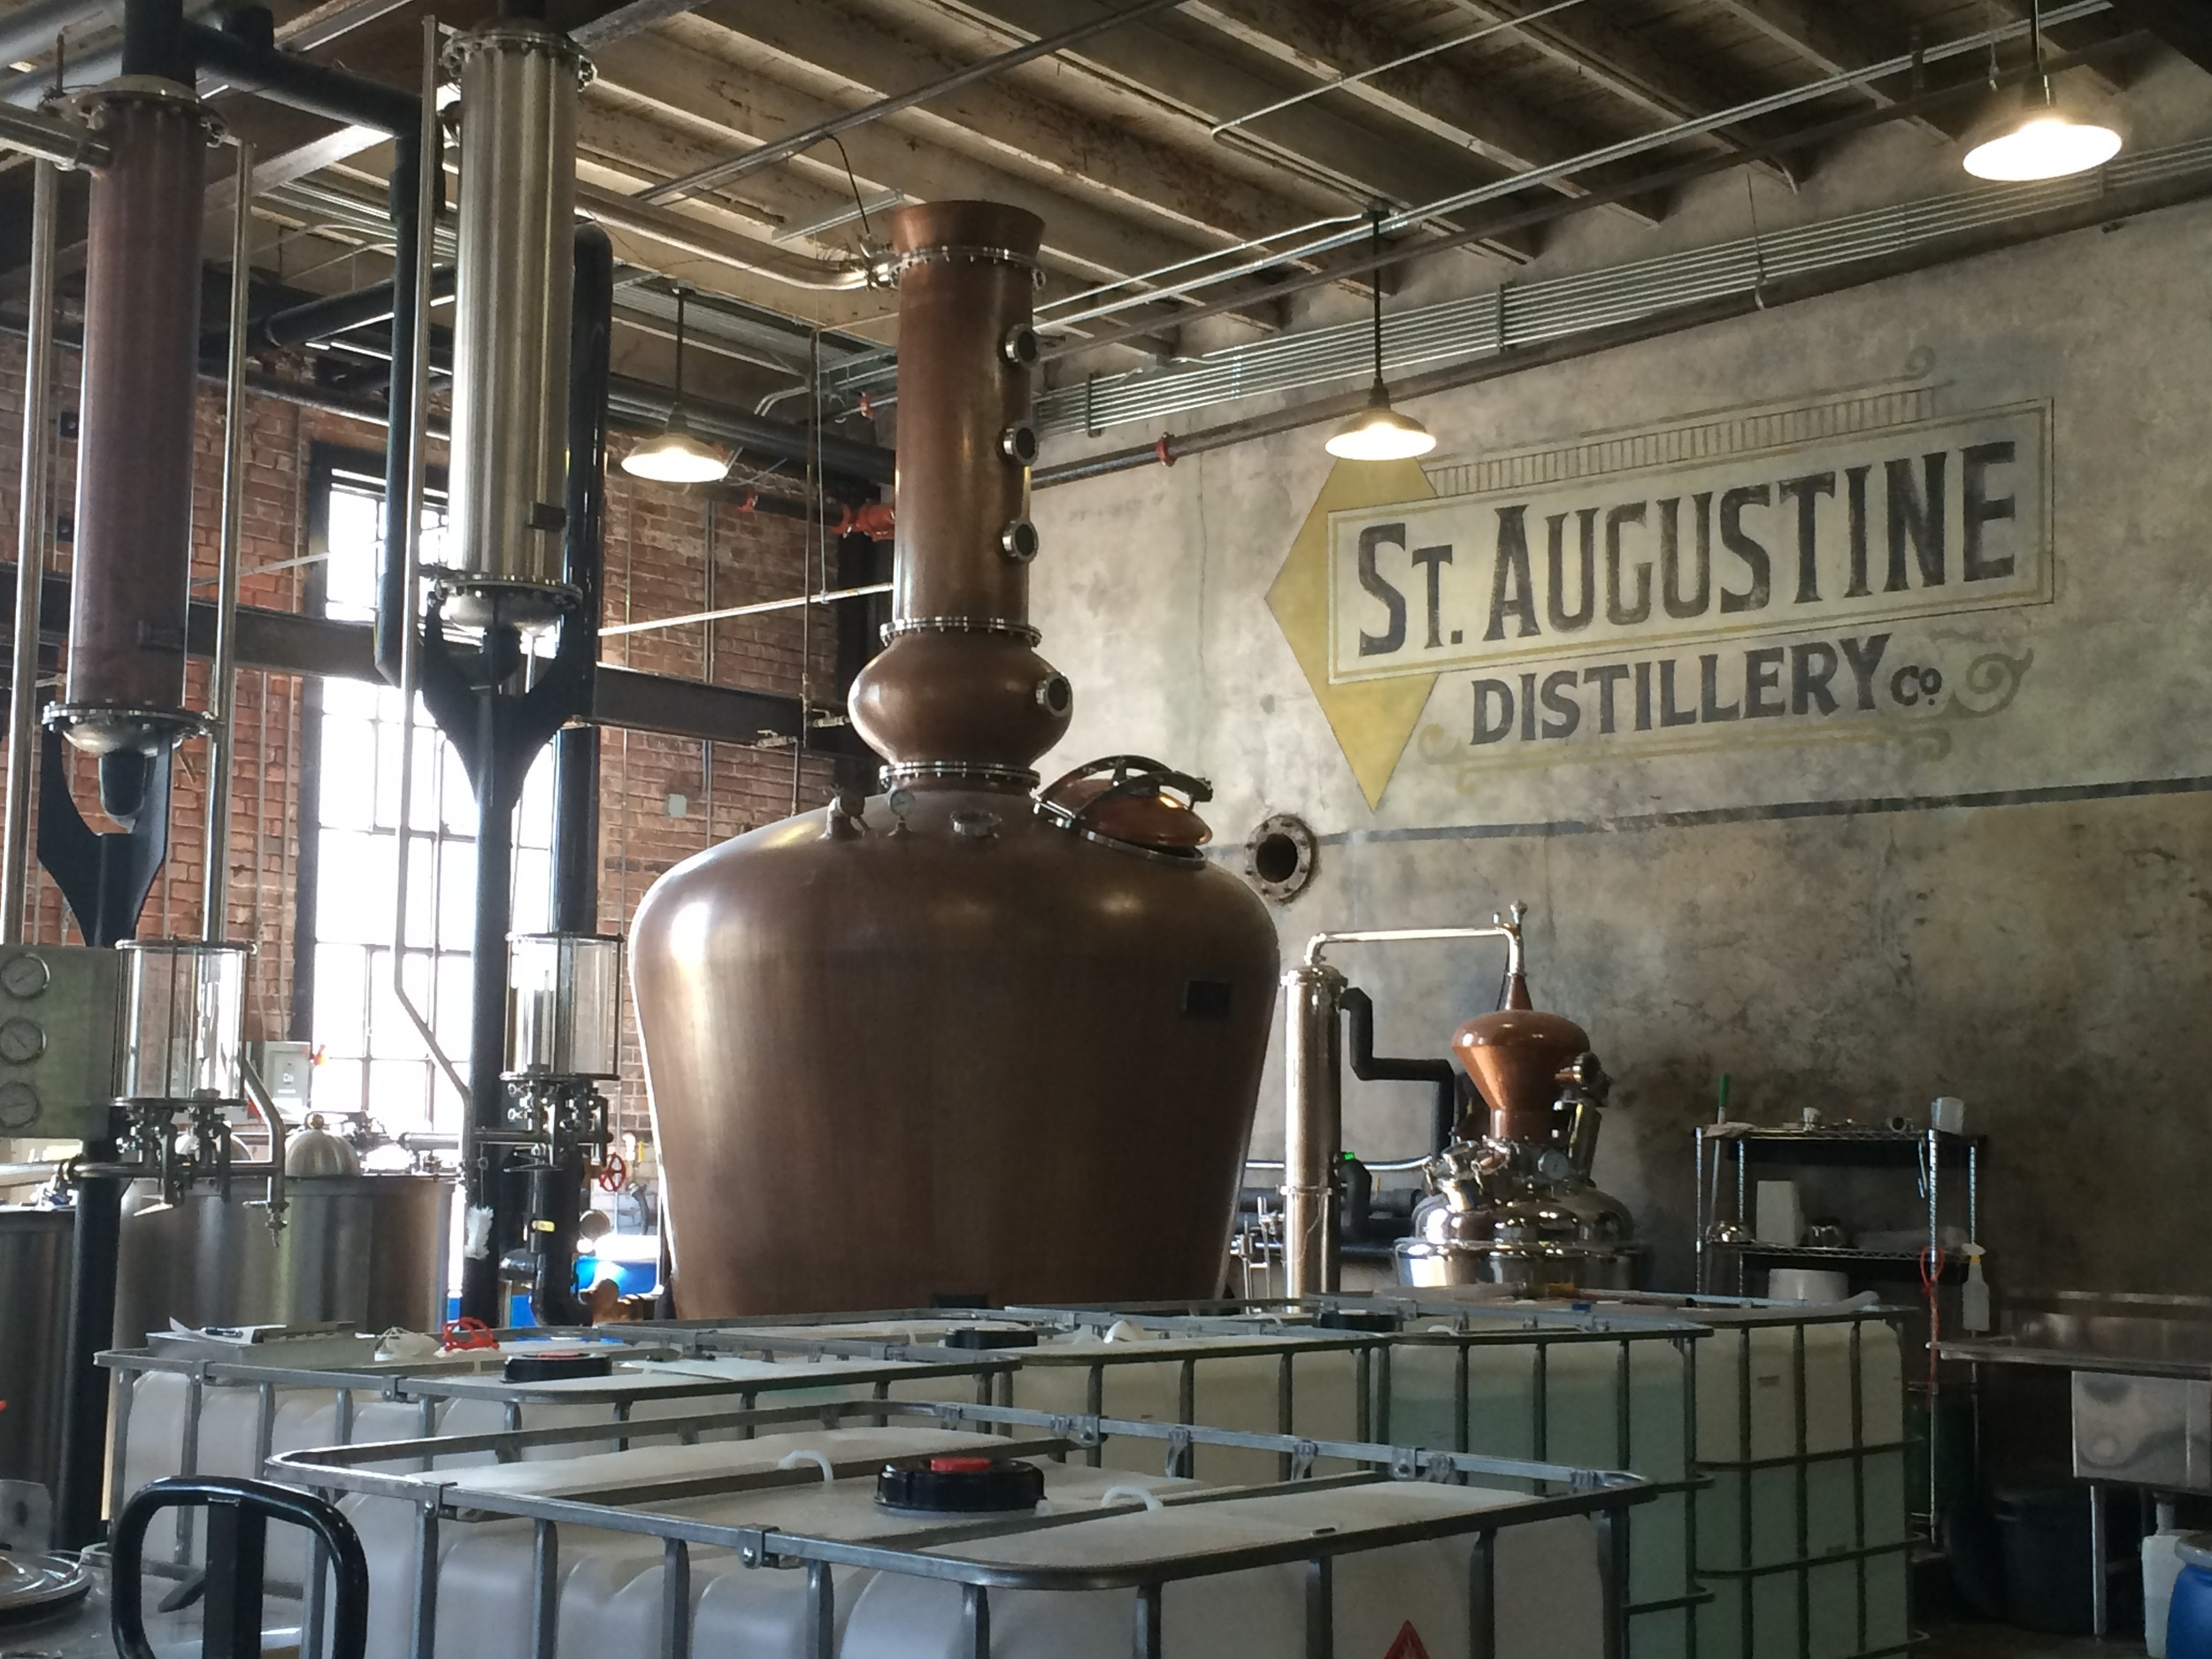 Touring the Distillery